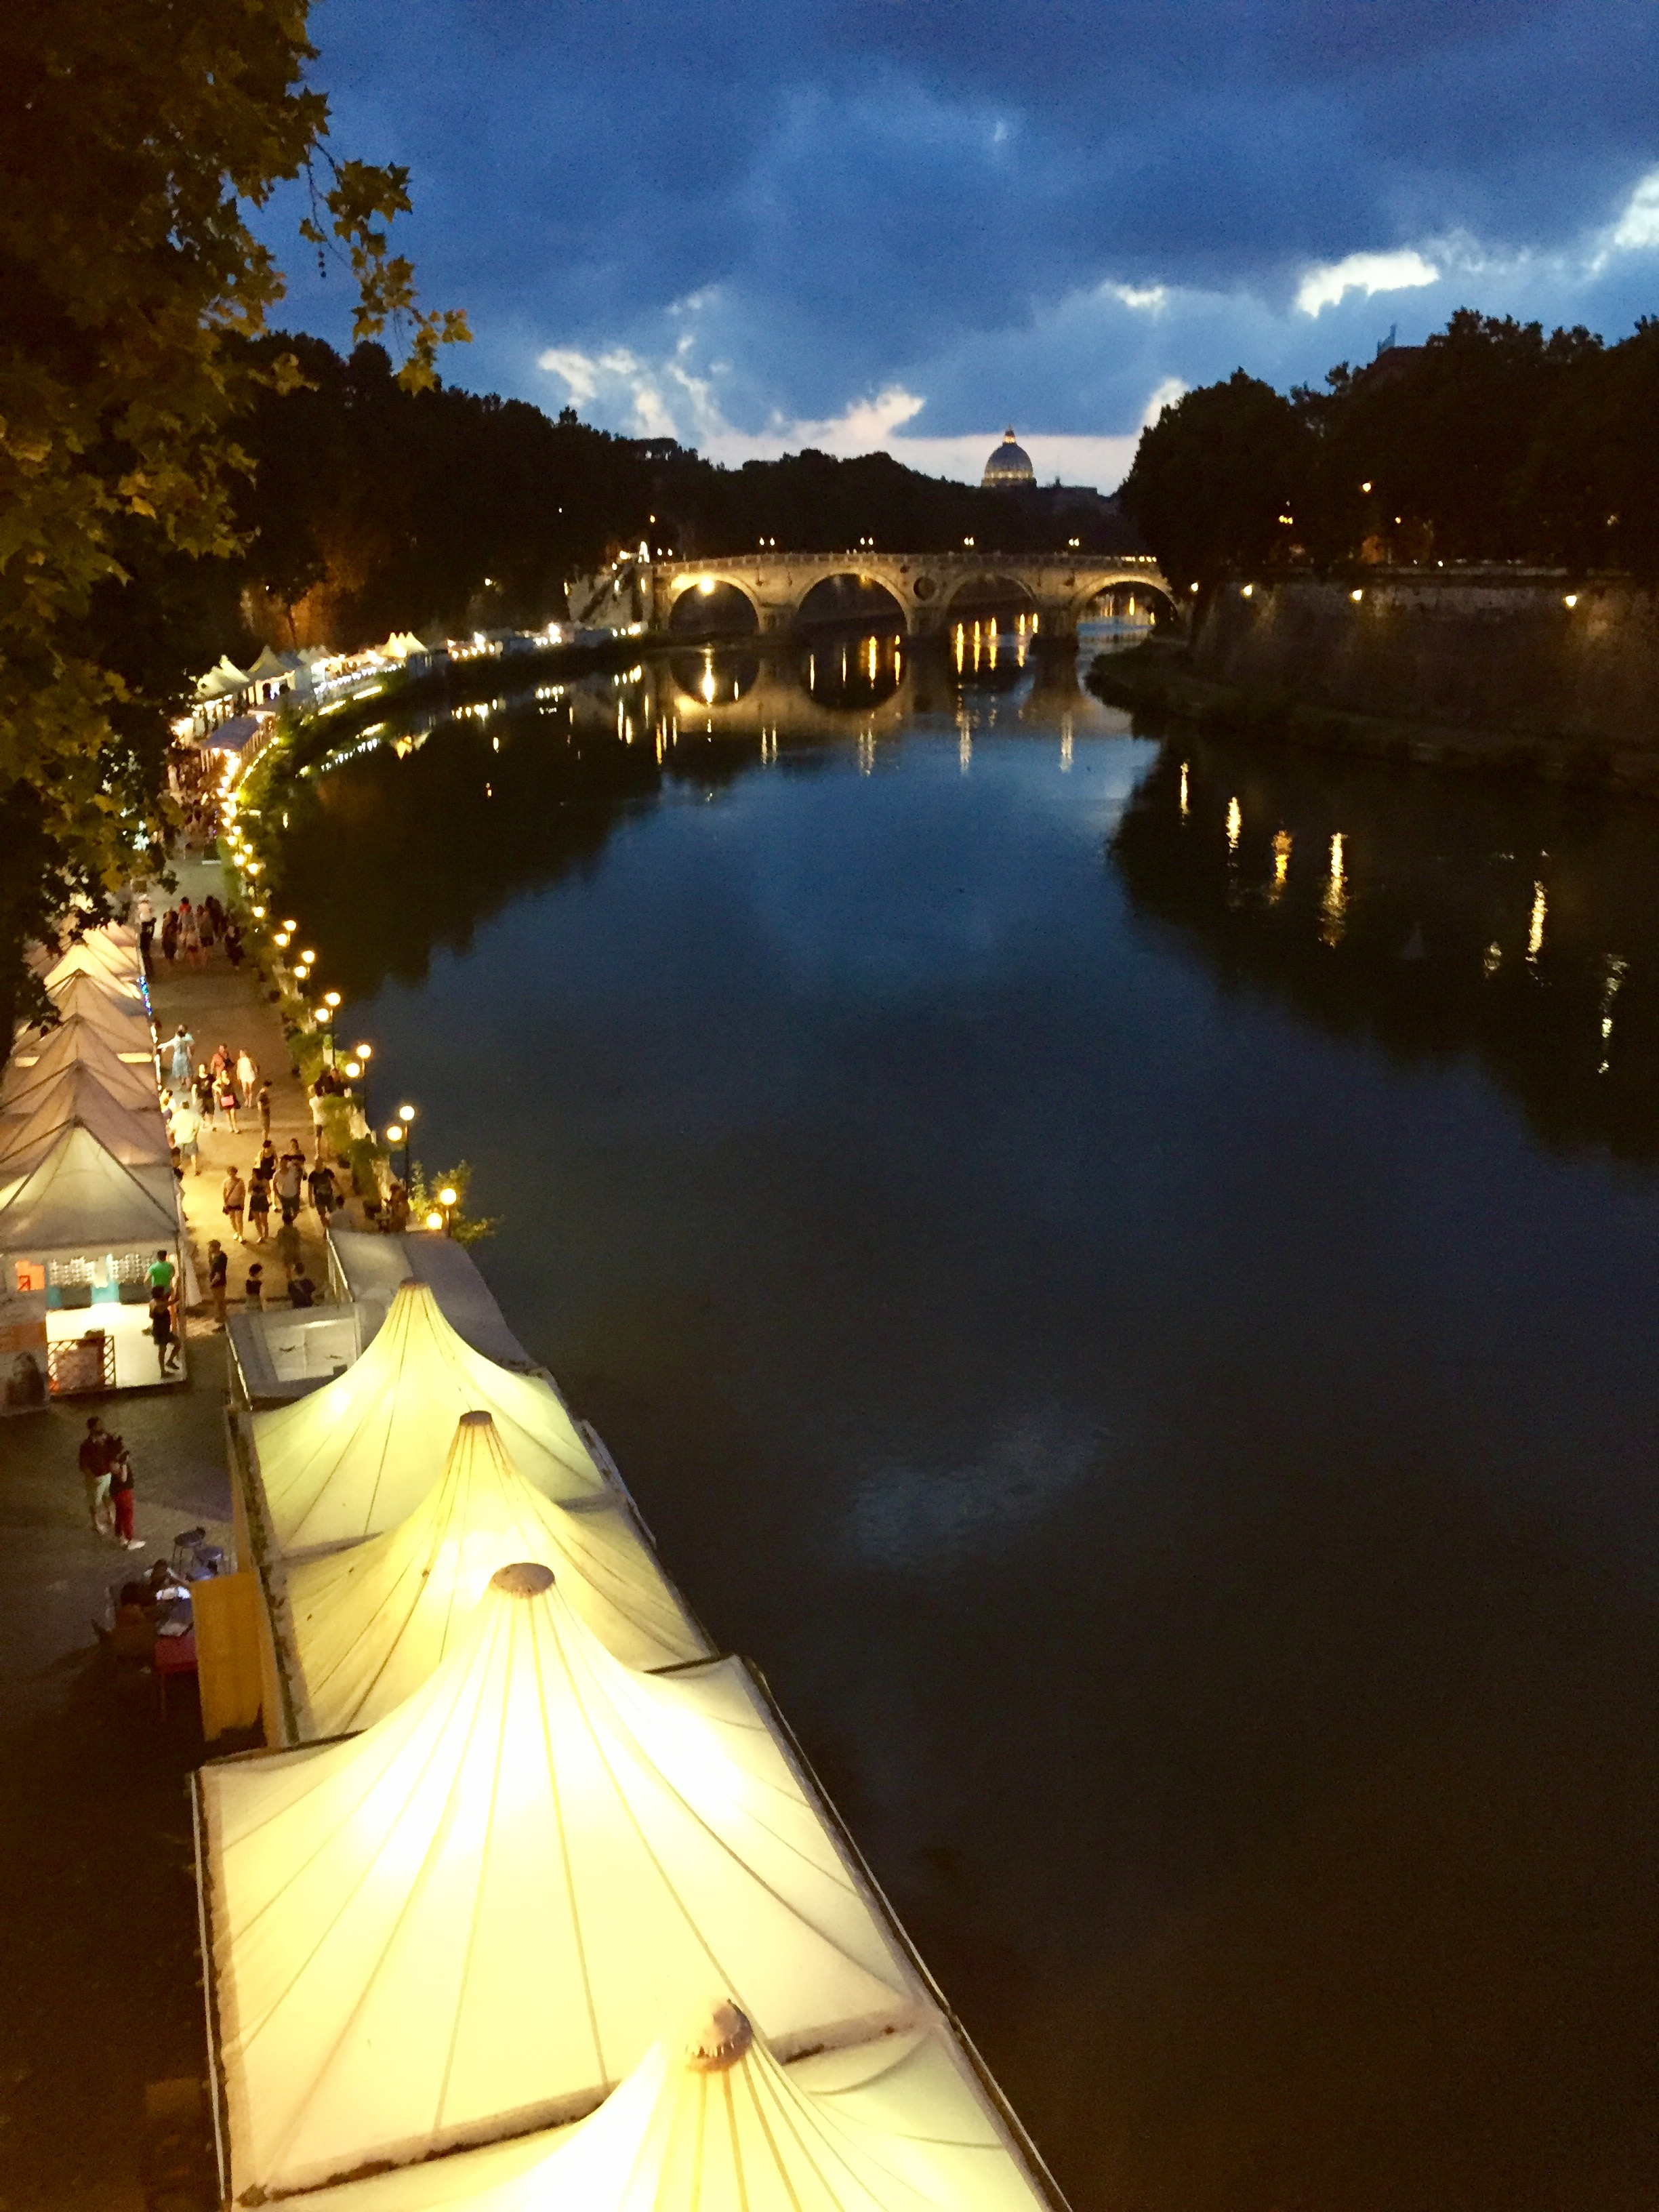 Eating Italy Food Tour Rome: The City Glows